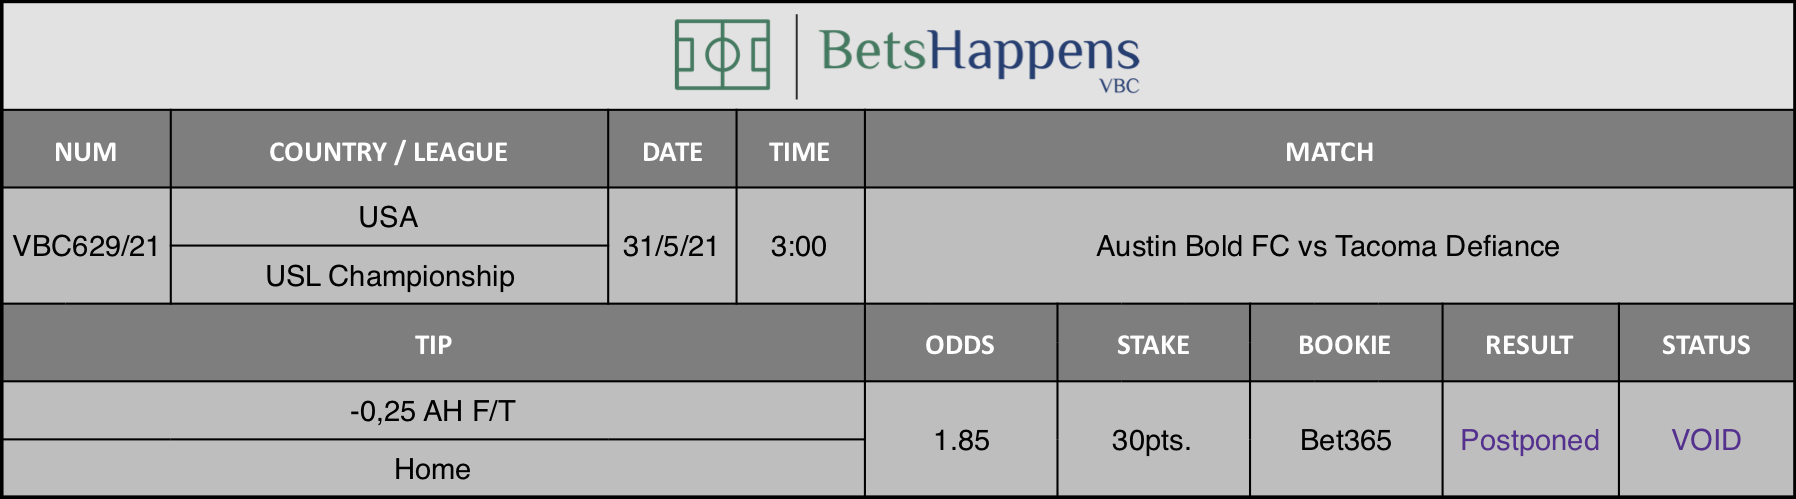 Results of our tip for the Austin Bold FC vs Tacoma Defiance where -0,25 AH F/T Home is recommended.